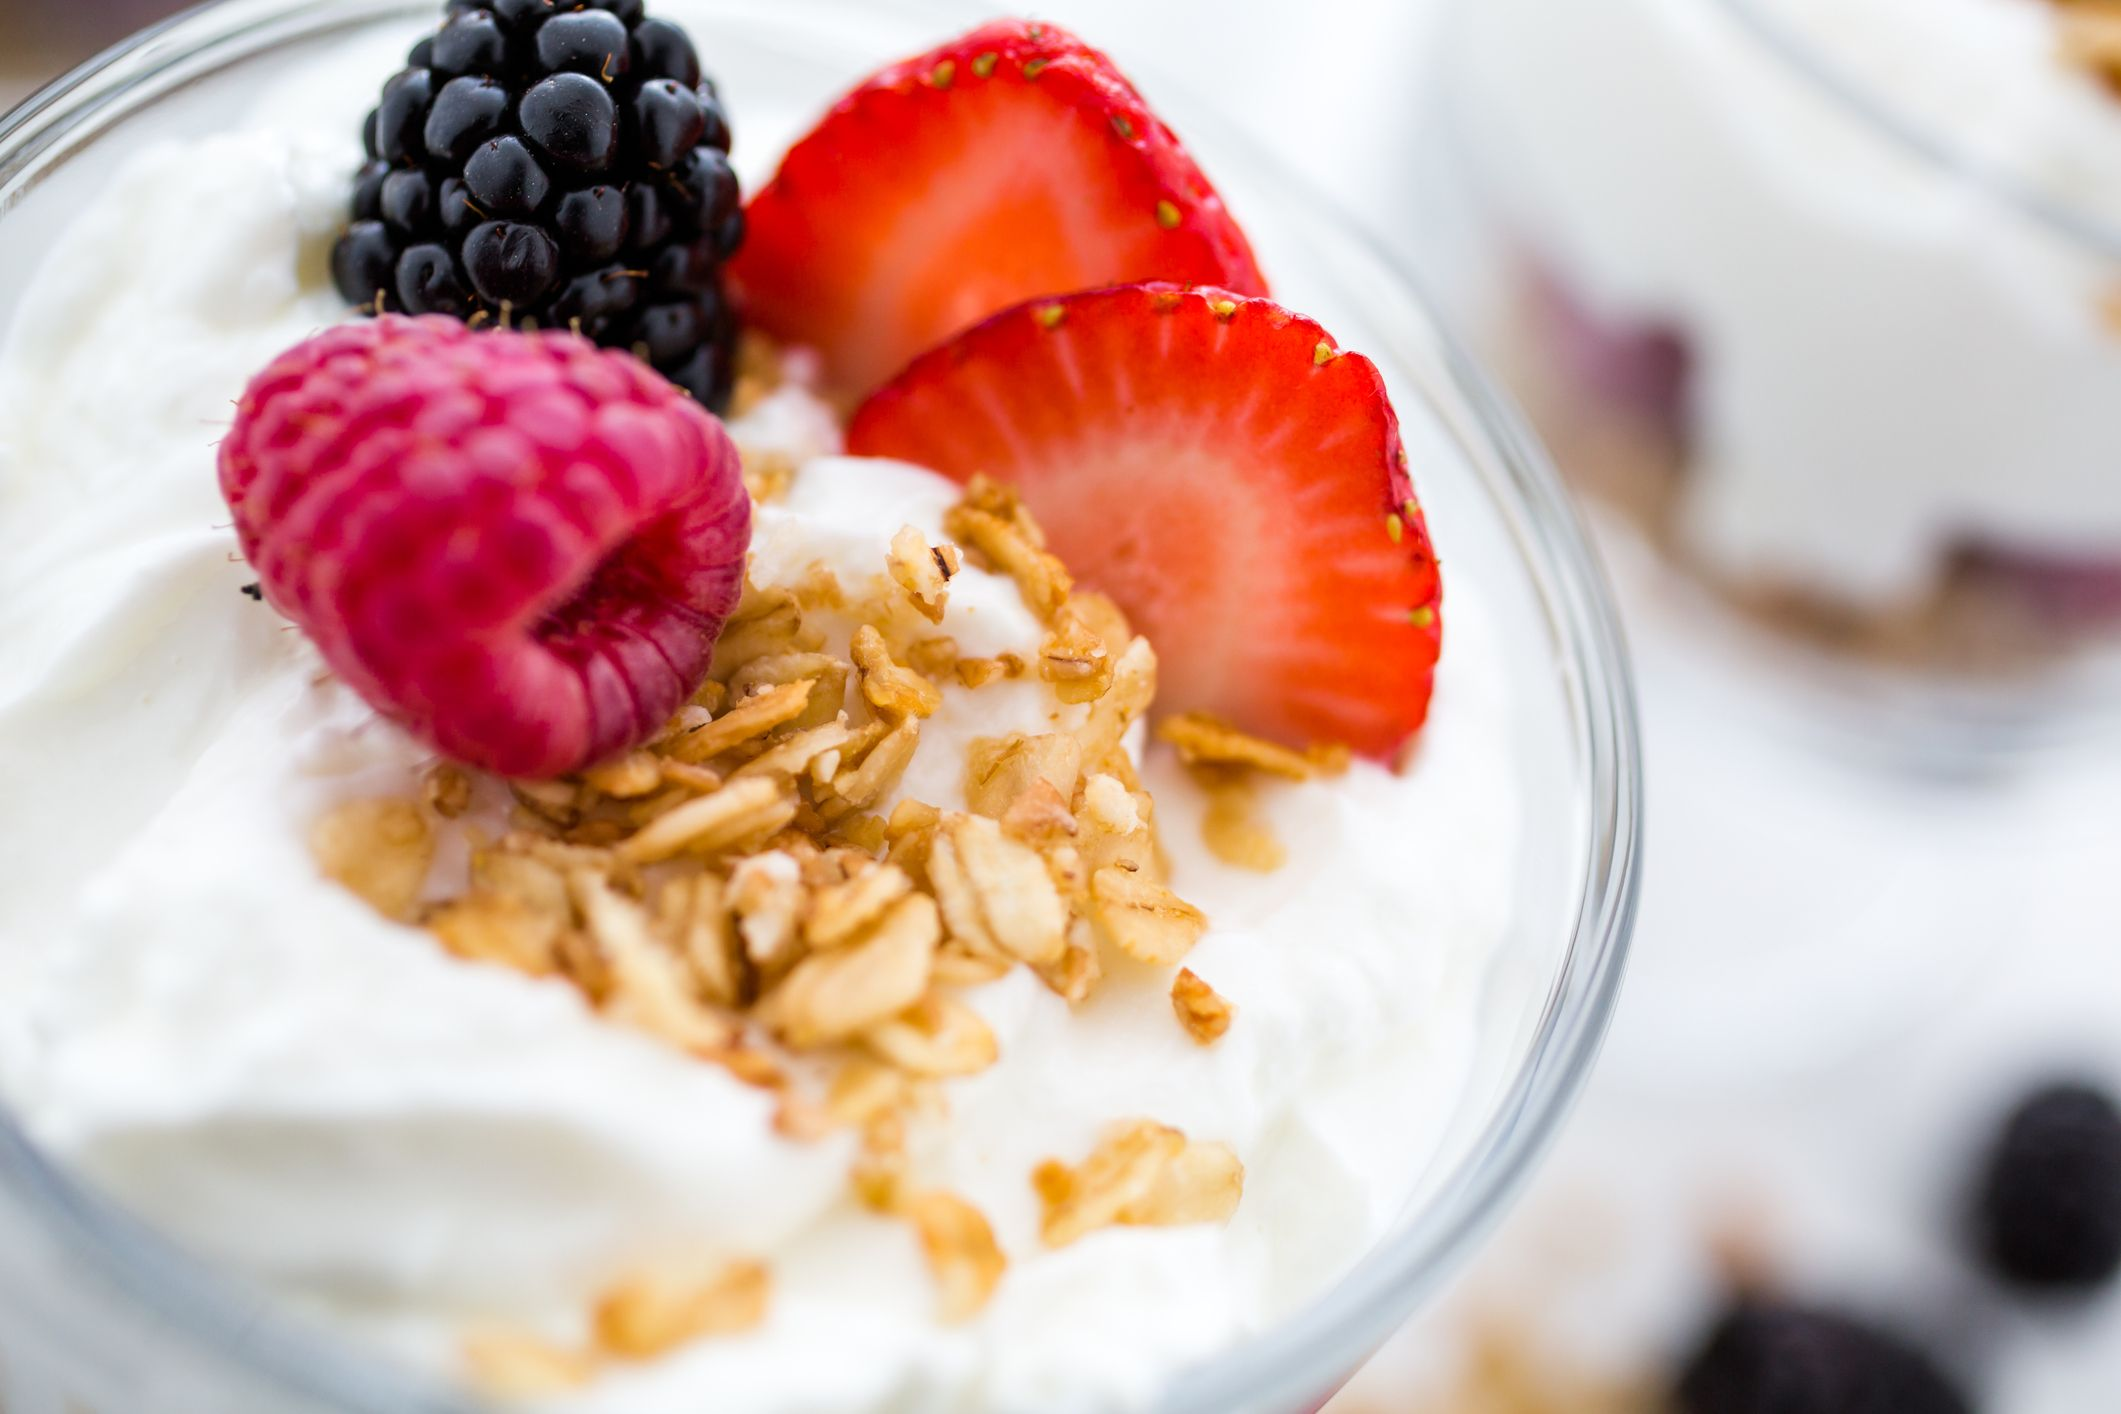 Whats Healthier: Greek Yogurt Or Low Fat Yogurt